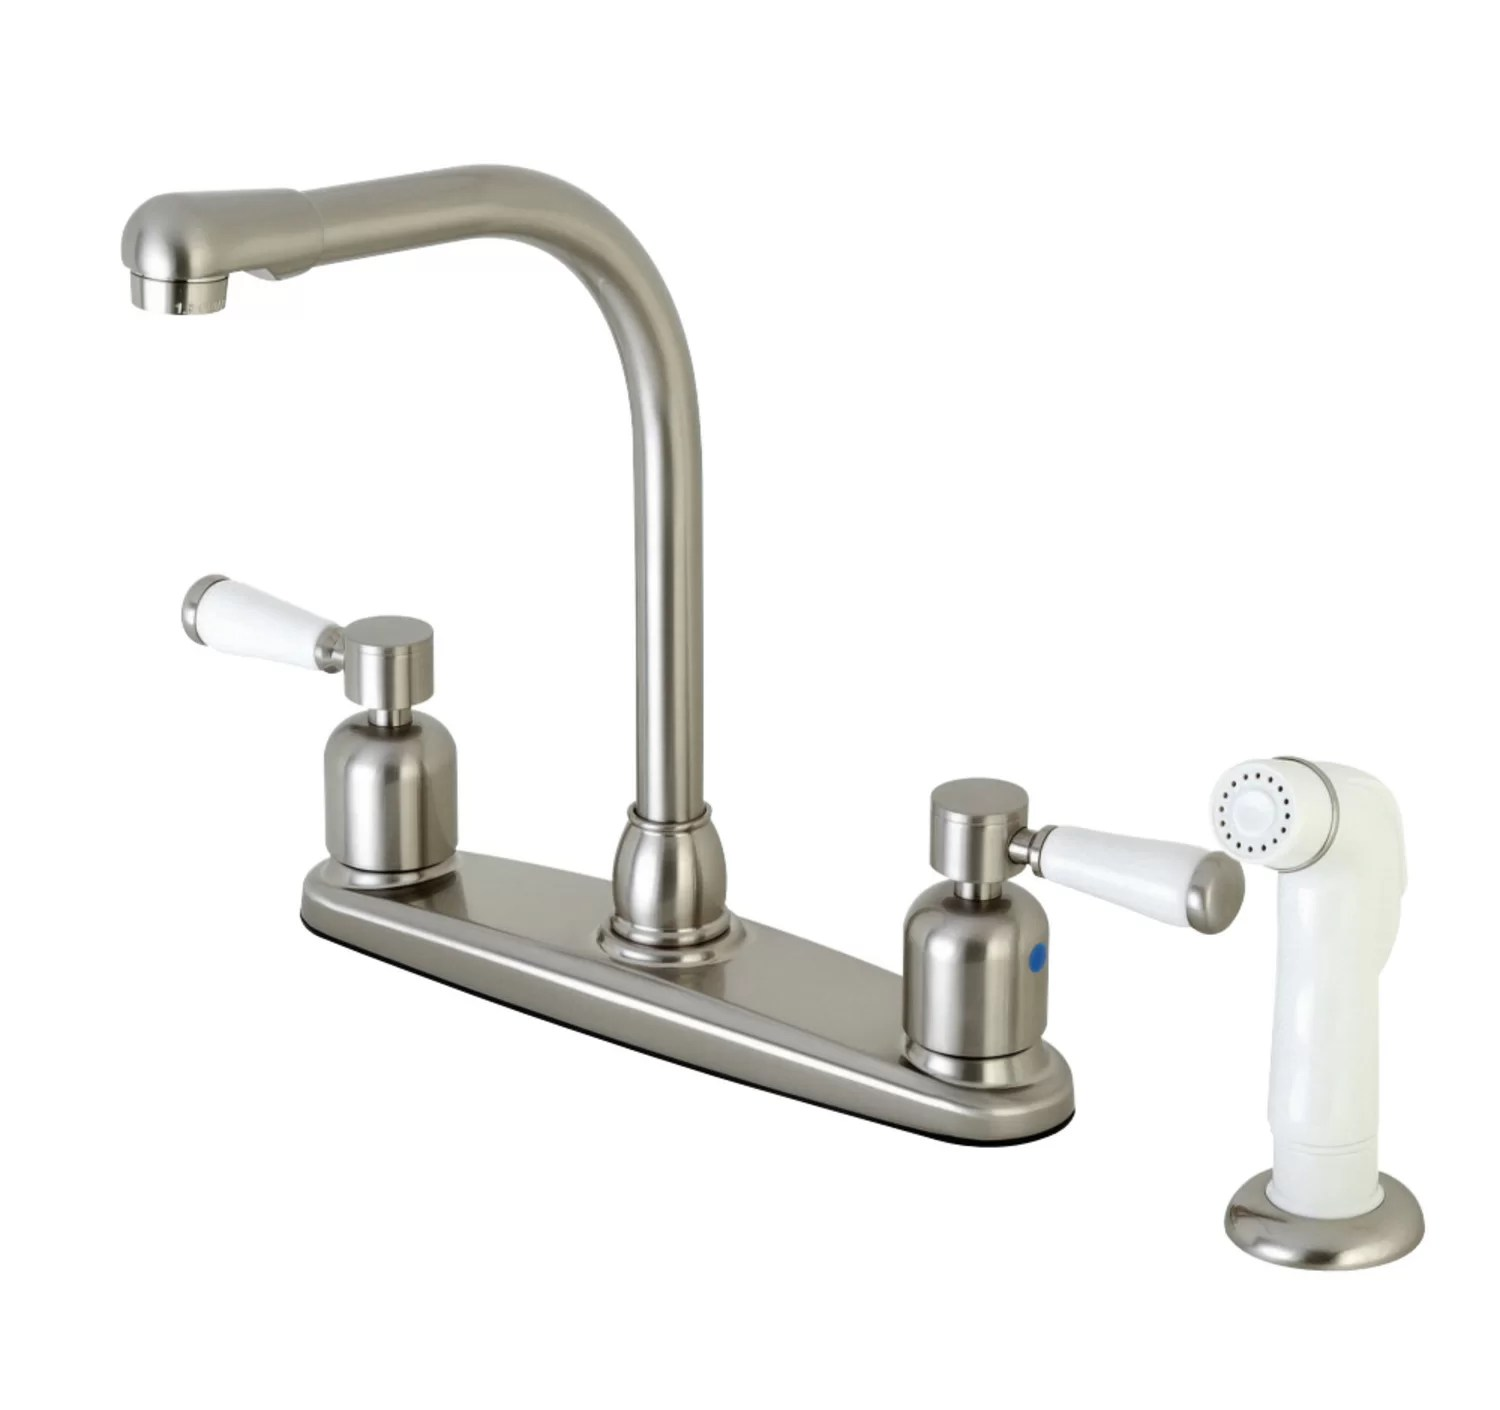 paris hot cold water dispenser double handle kitchen faucet with side spray